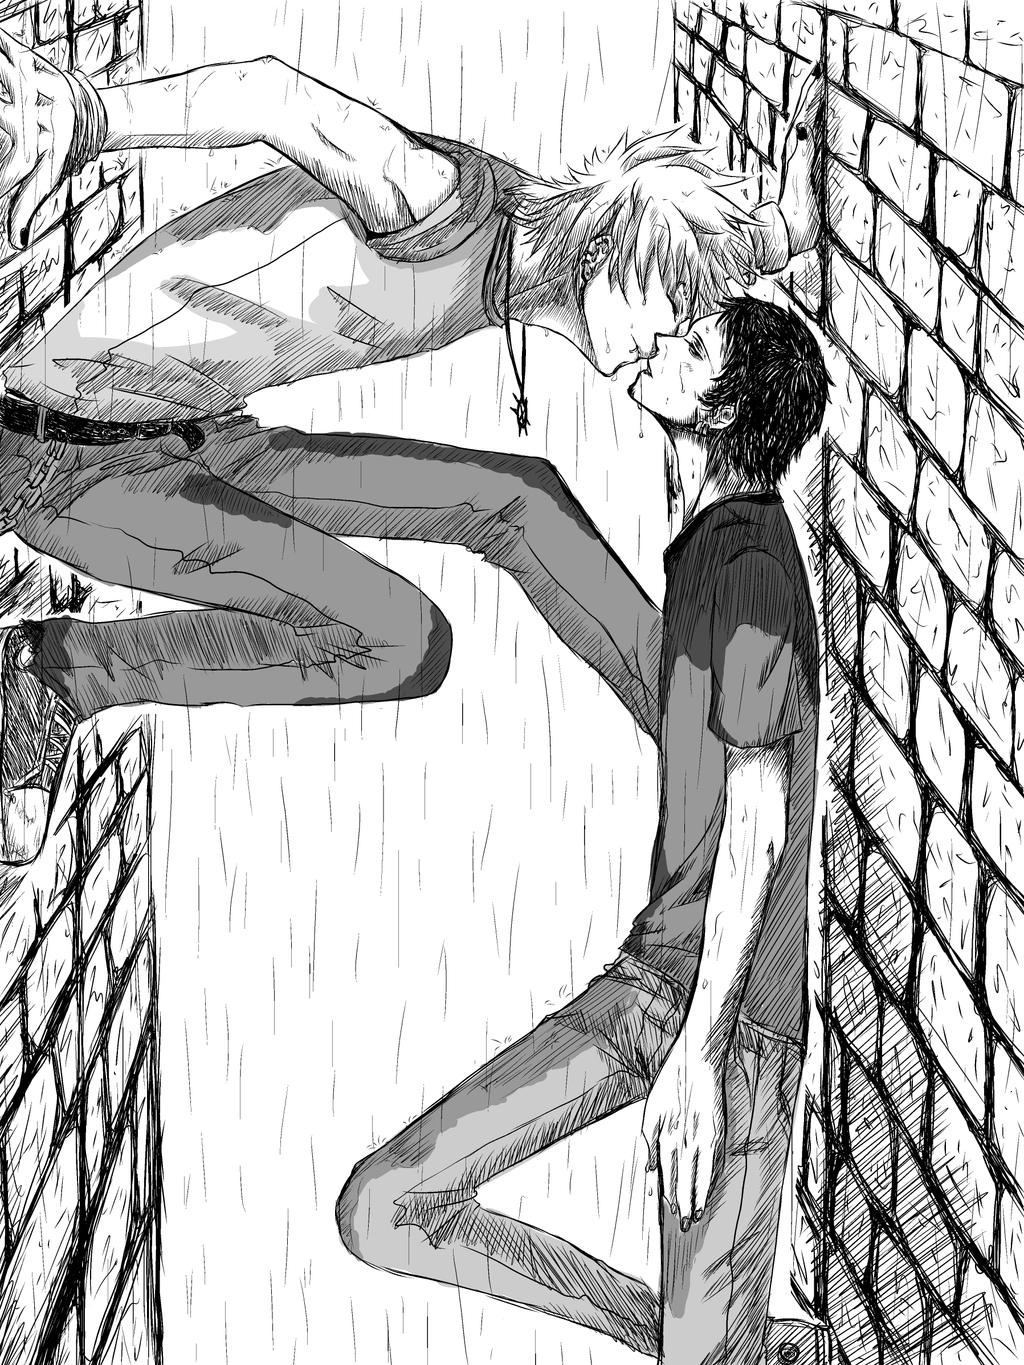 Kiss in the rain : KiddLaw by Beccilein on deviantART